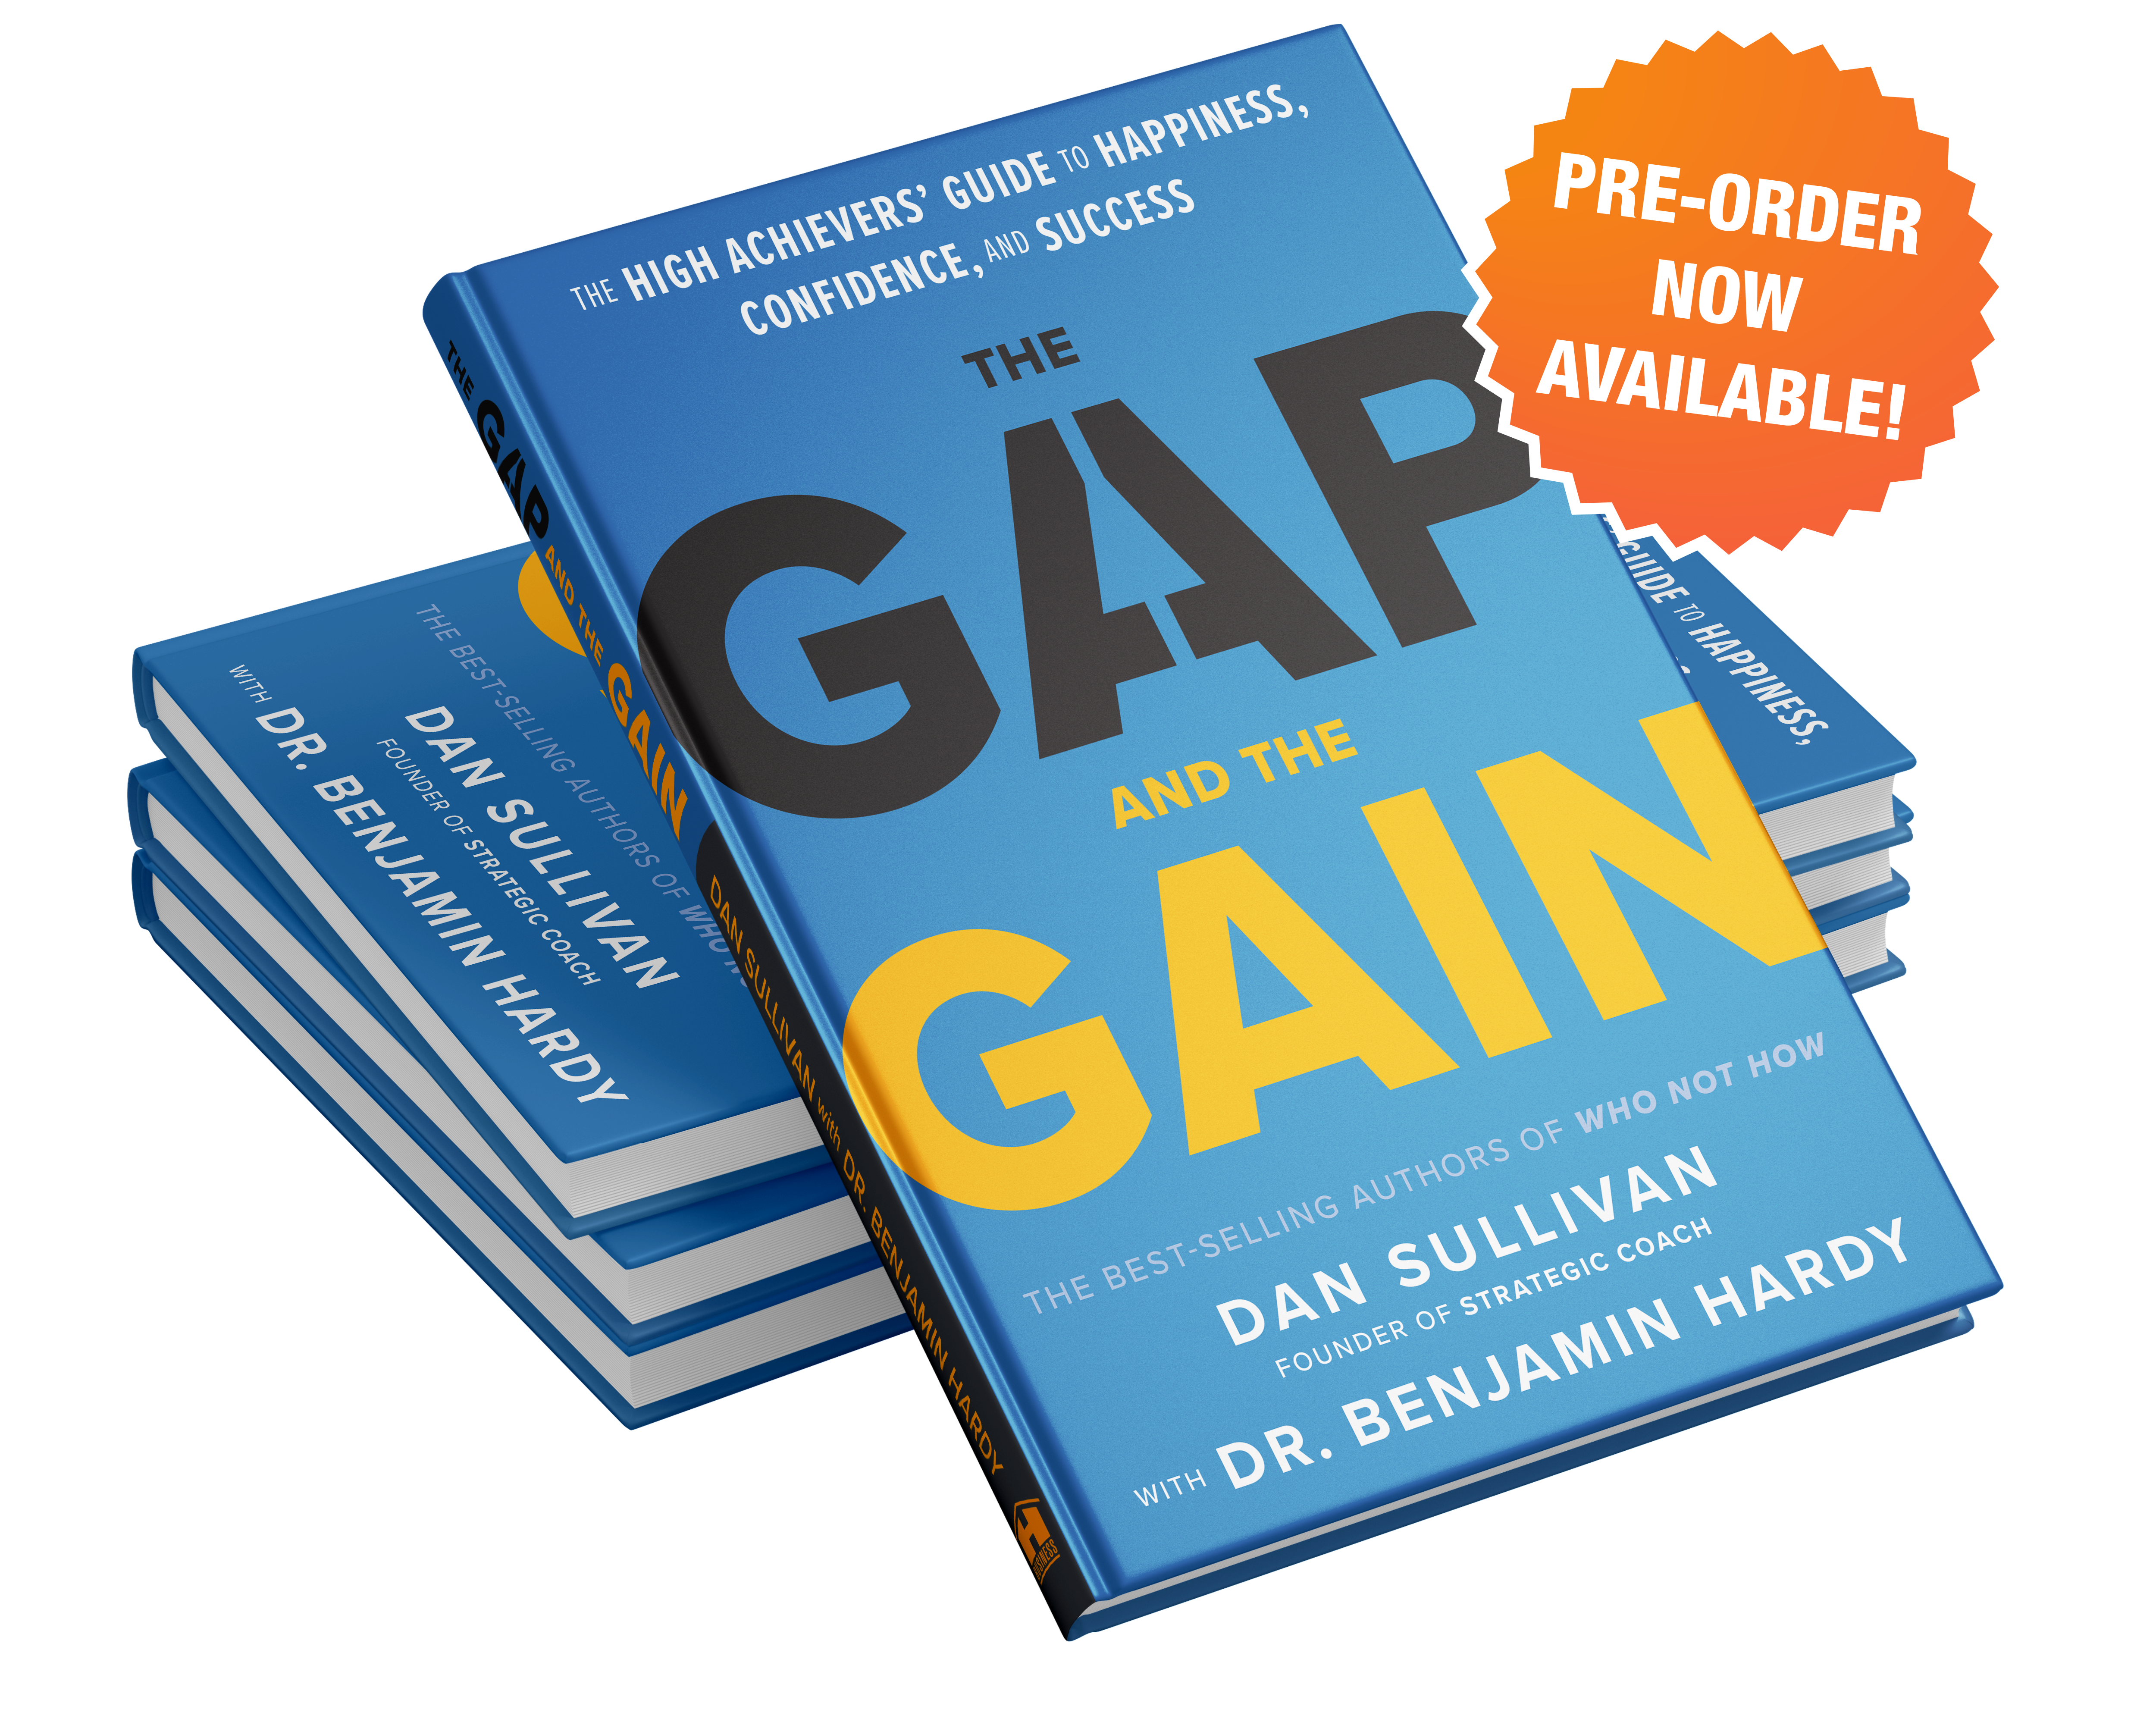 The Gap And The Gain Book Pre-order Available Now